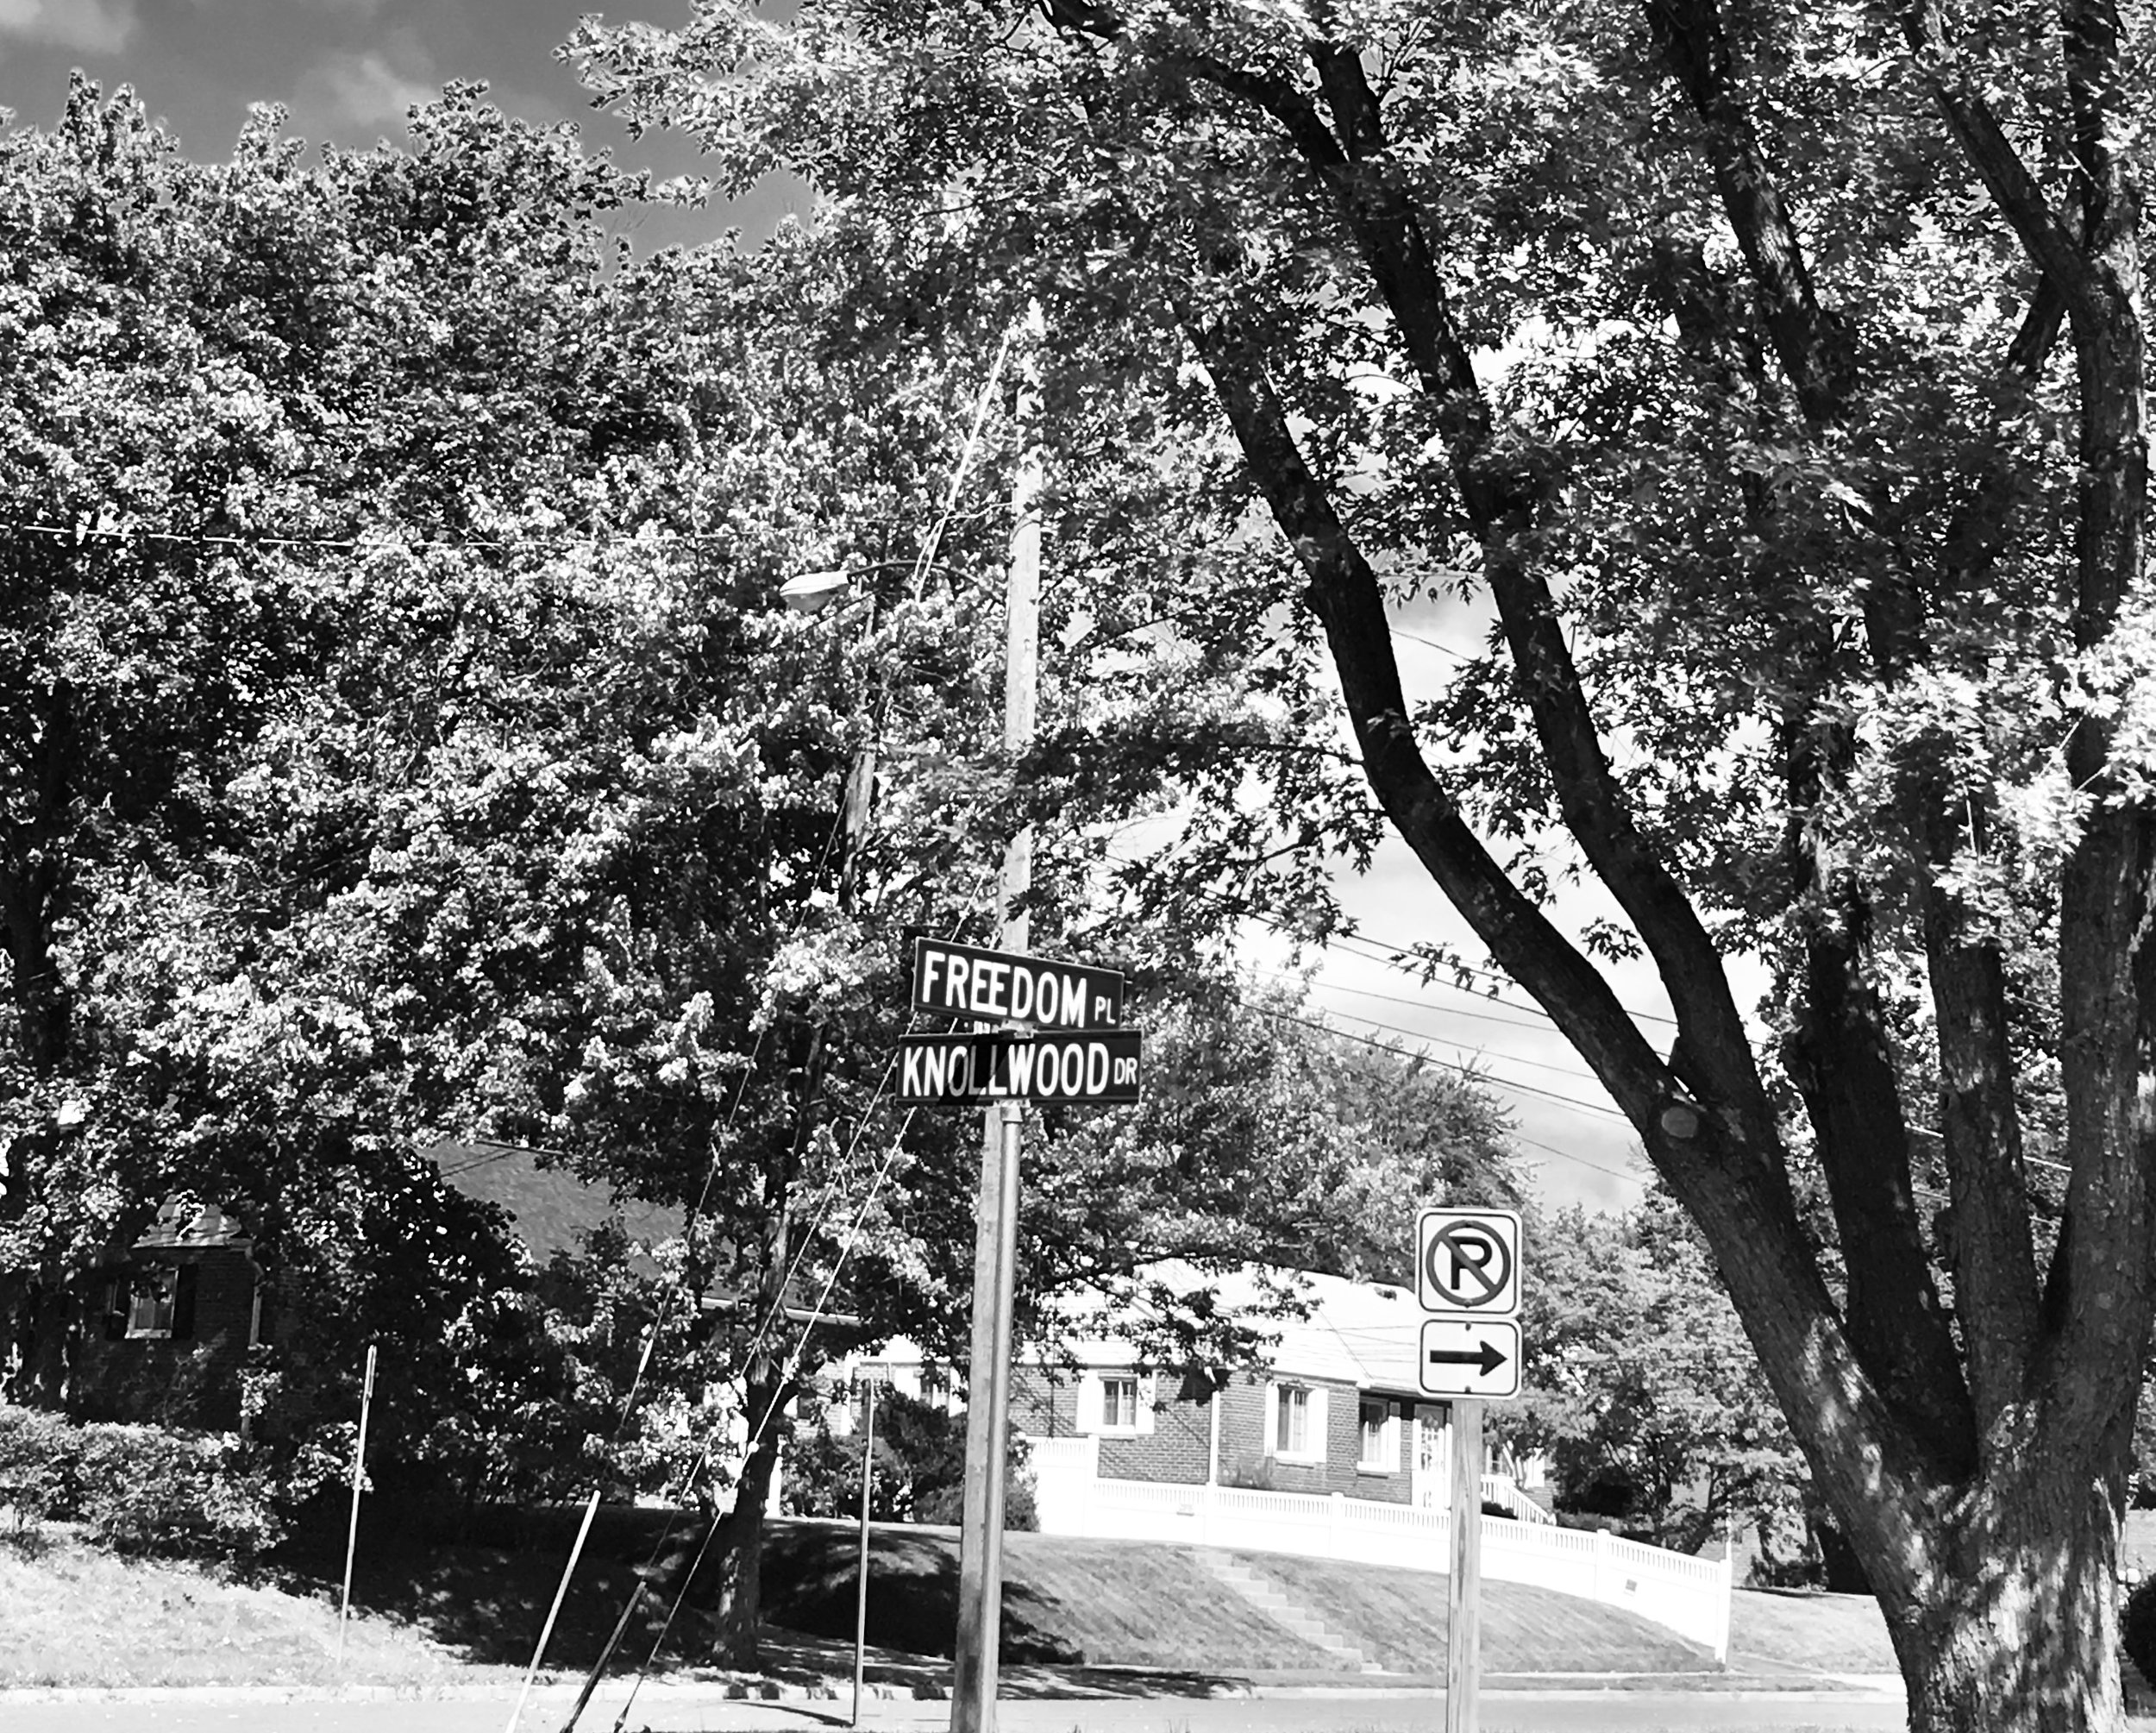 """Photo credit: Claudia Rojas  [Image description: The intersection of a street sign.One sign says """"Freedom"""" and one says """"Knollwood."""" Trees slightly cover a house in the background.]"""